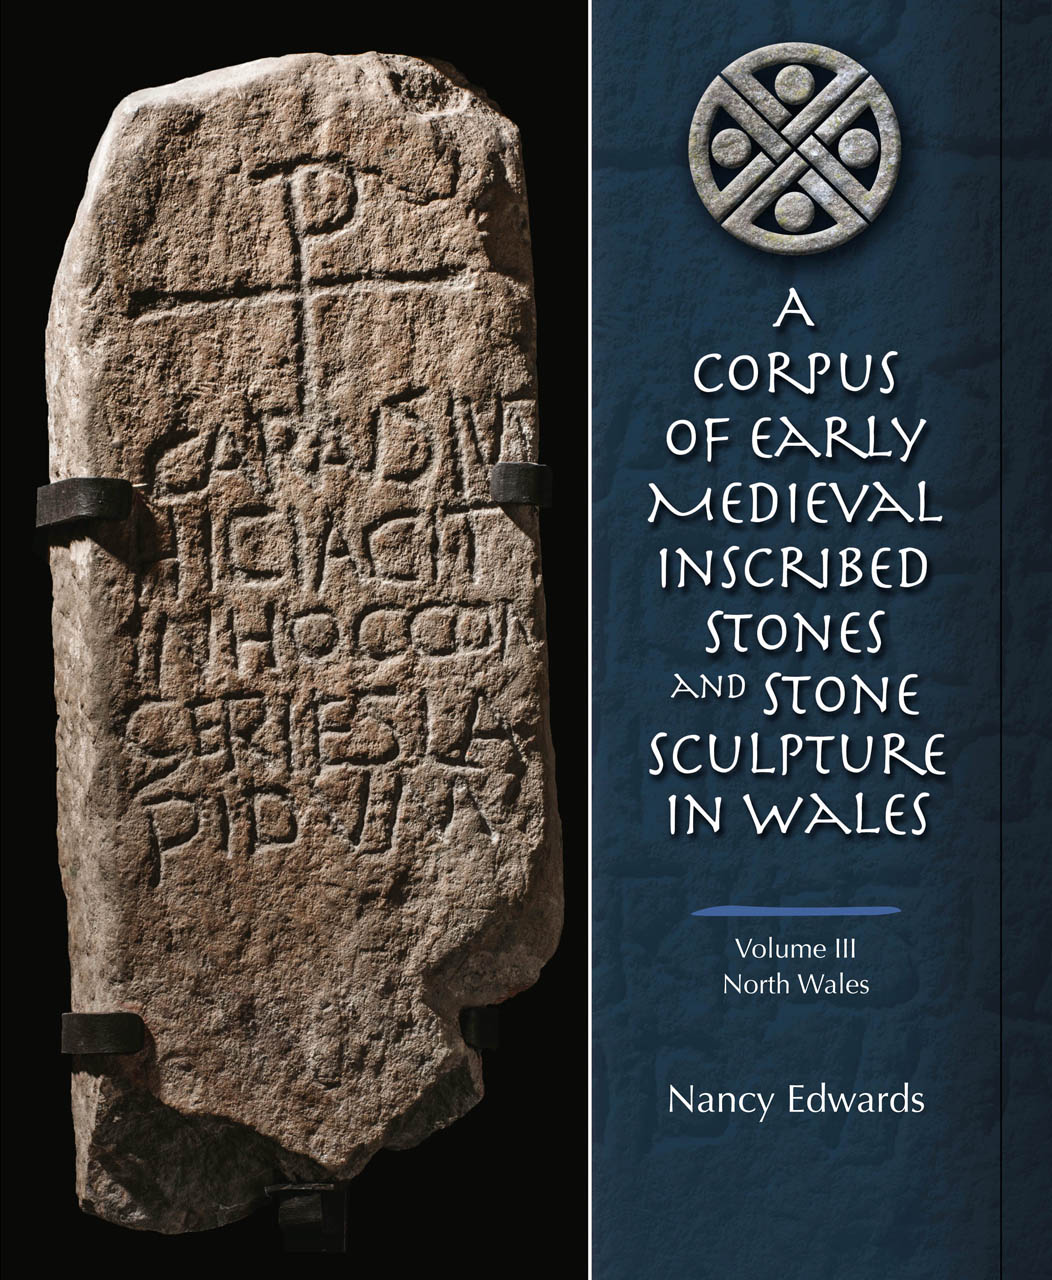 A corpus of early medieval inscribed stones and stone